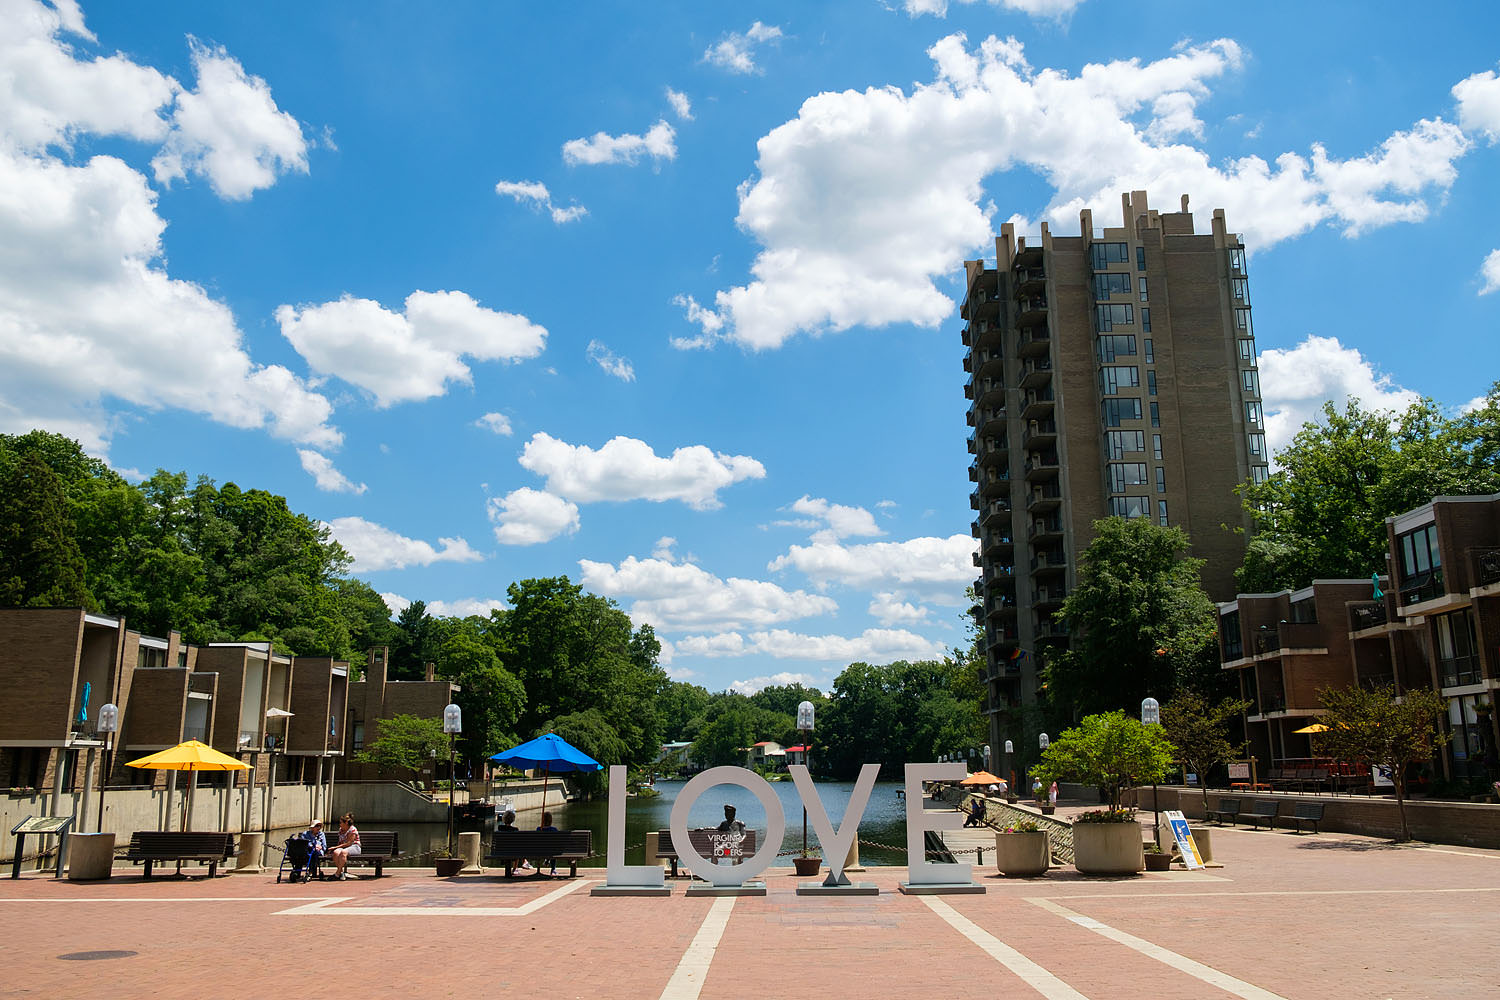 The LOVE sign at Lake Anne Plaza in Reston, Virginia